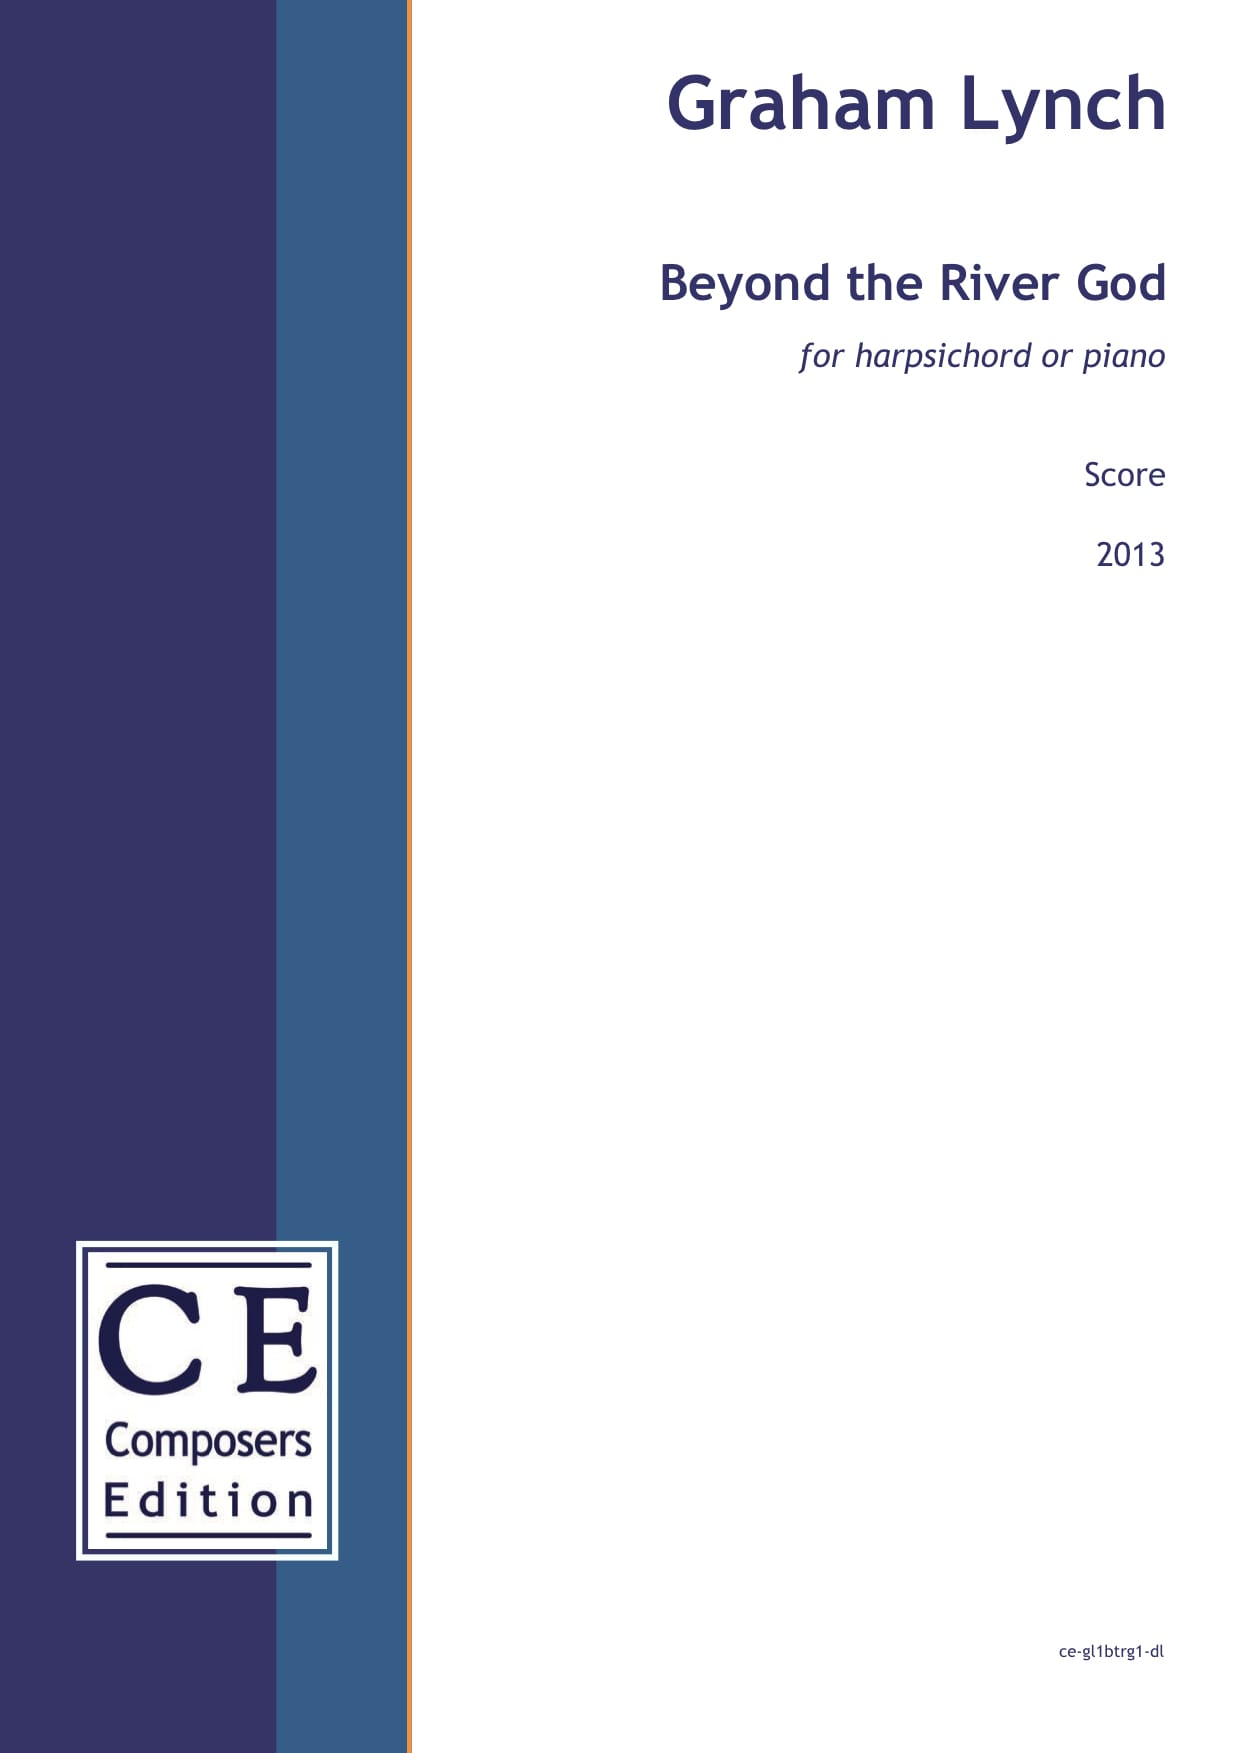 Graham Lynch: Beyond the River God for harpsichord or piano